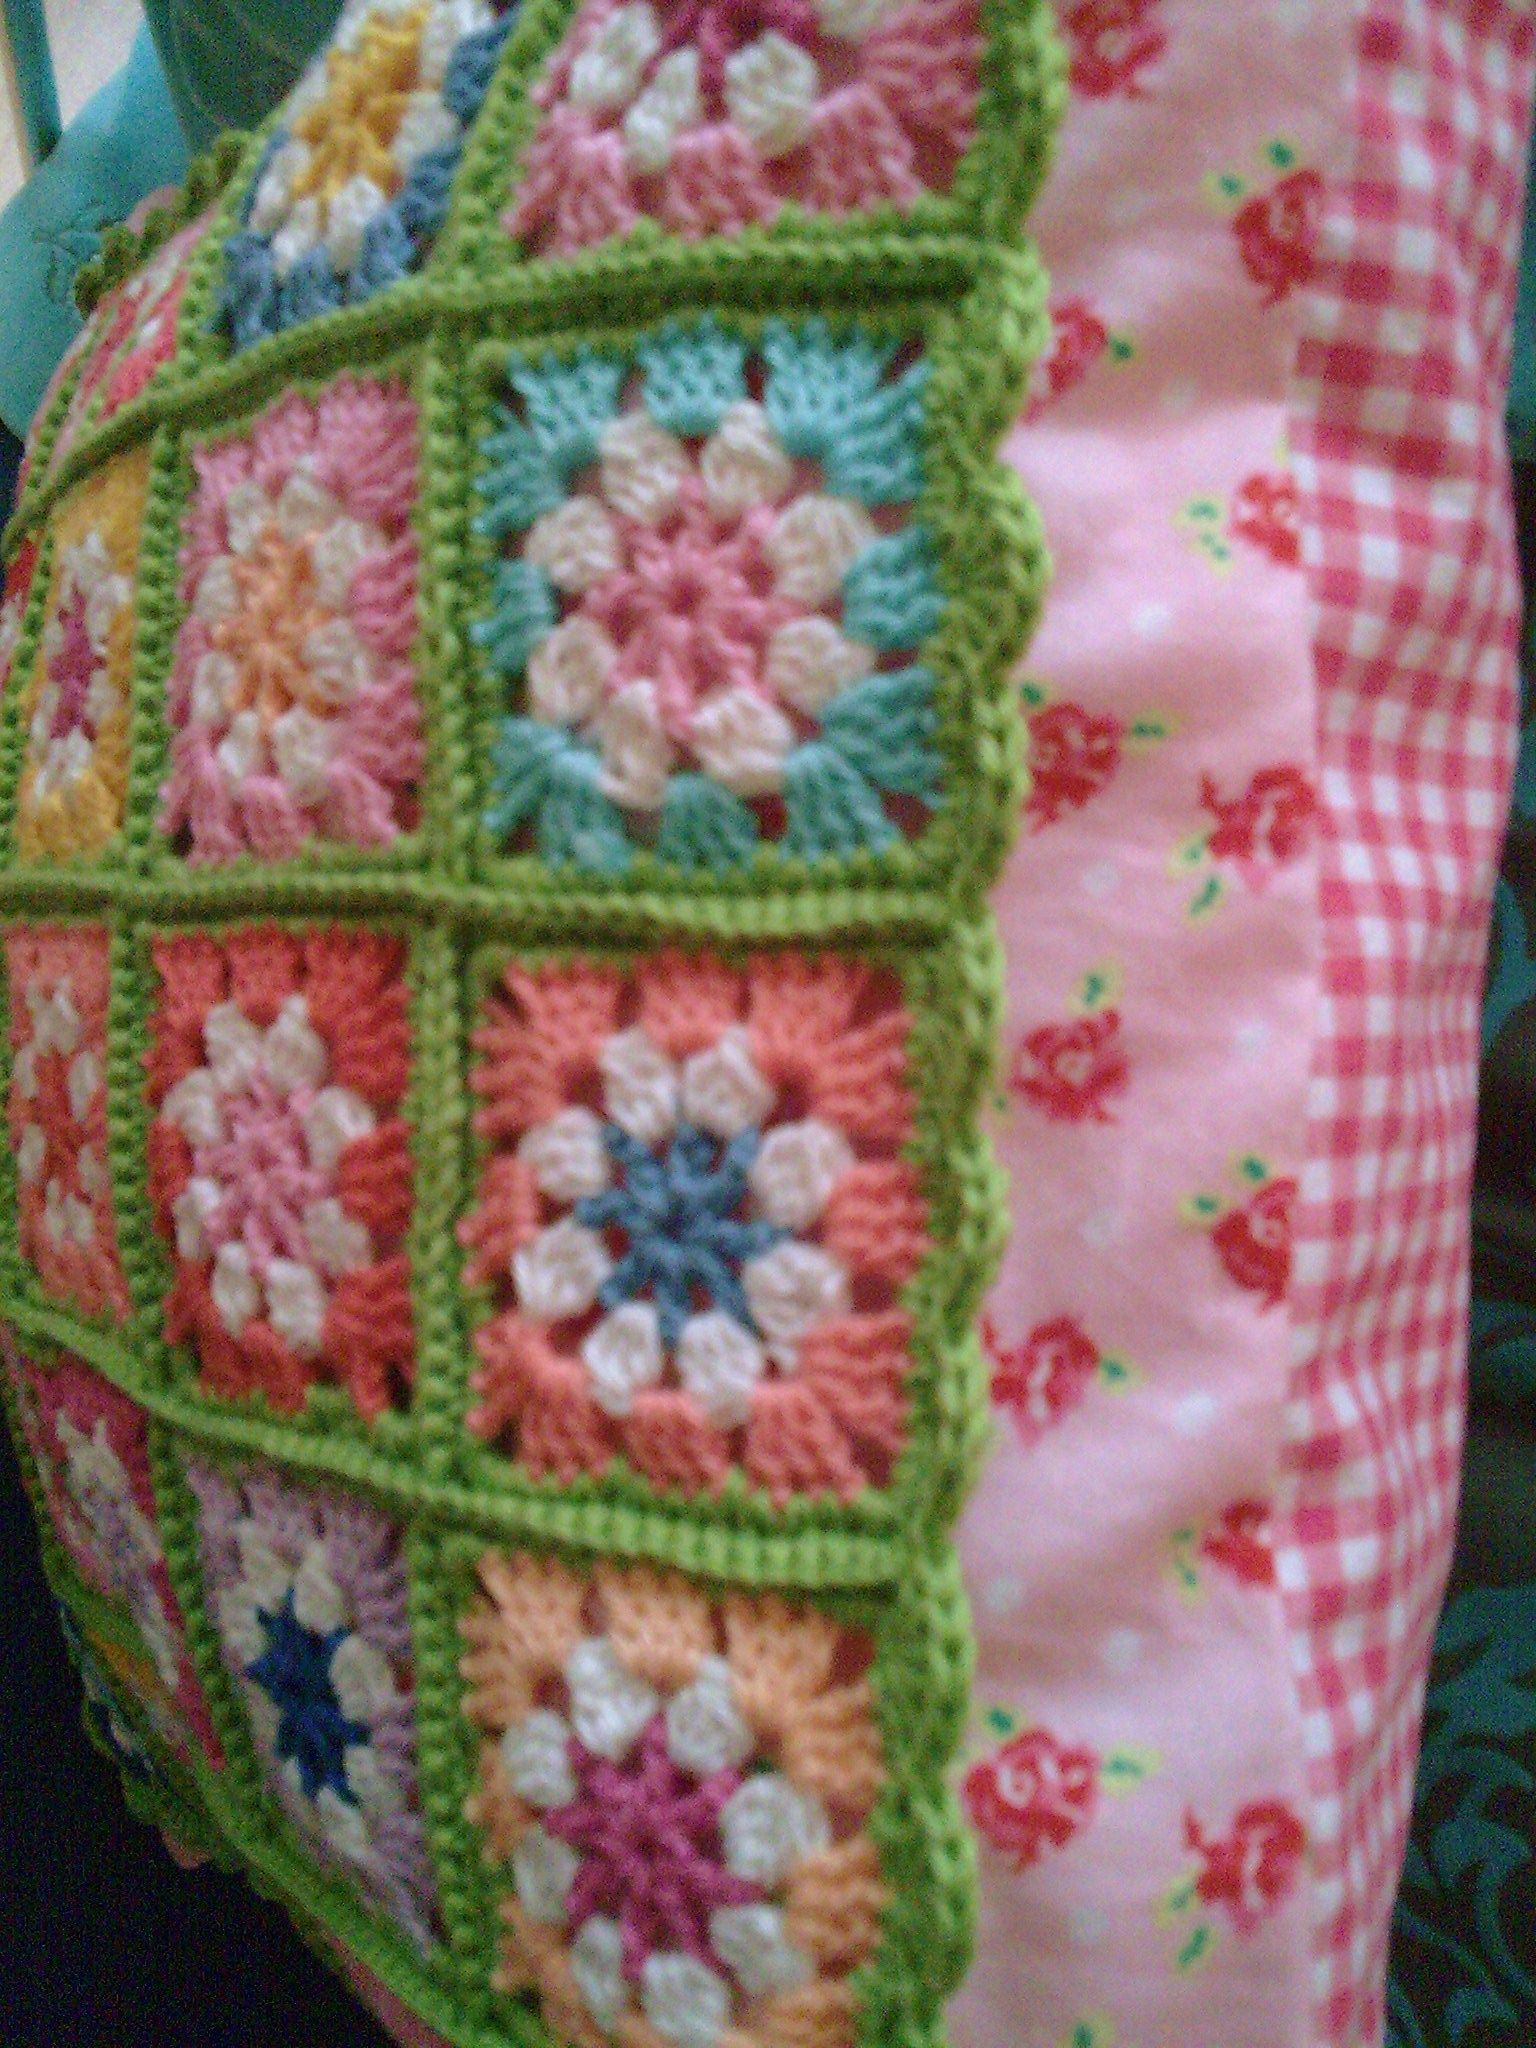 Crochet flower pillow.